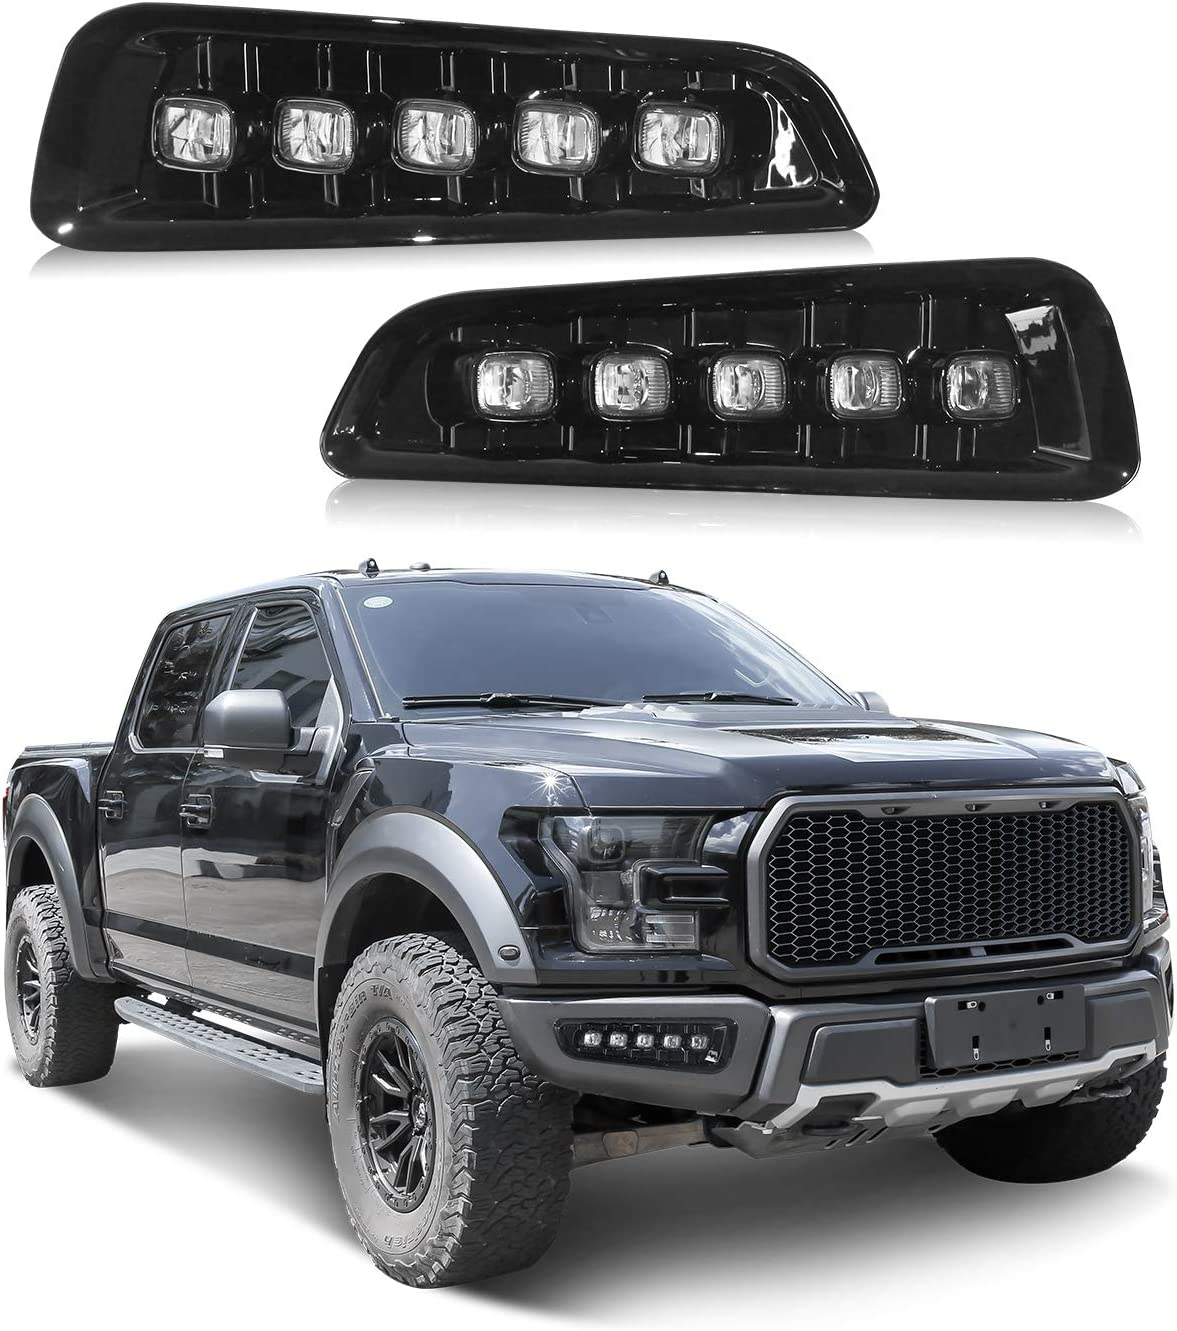 Tecoom Bumper Fog Lights for Compatible with 2015-2019 F150 Raptor Set of 2